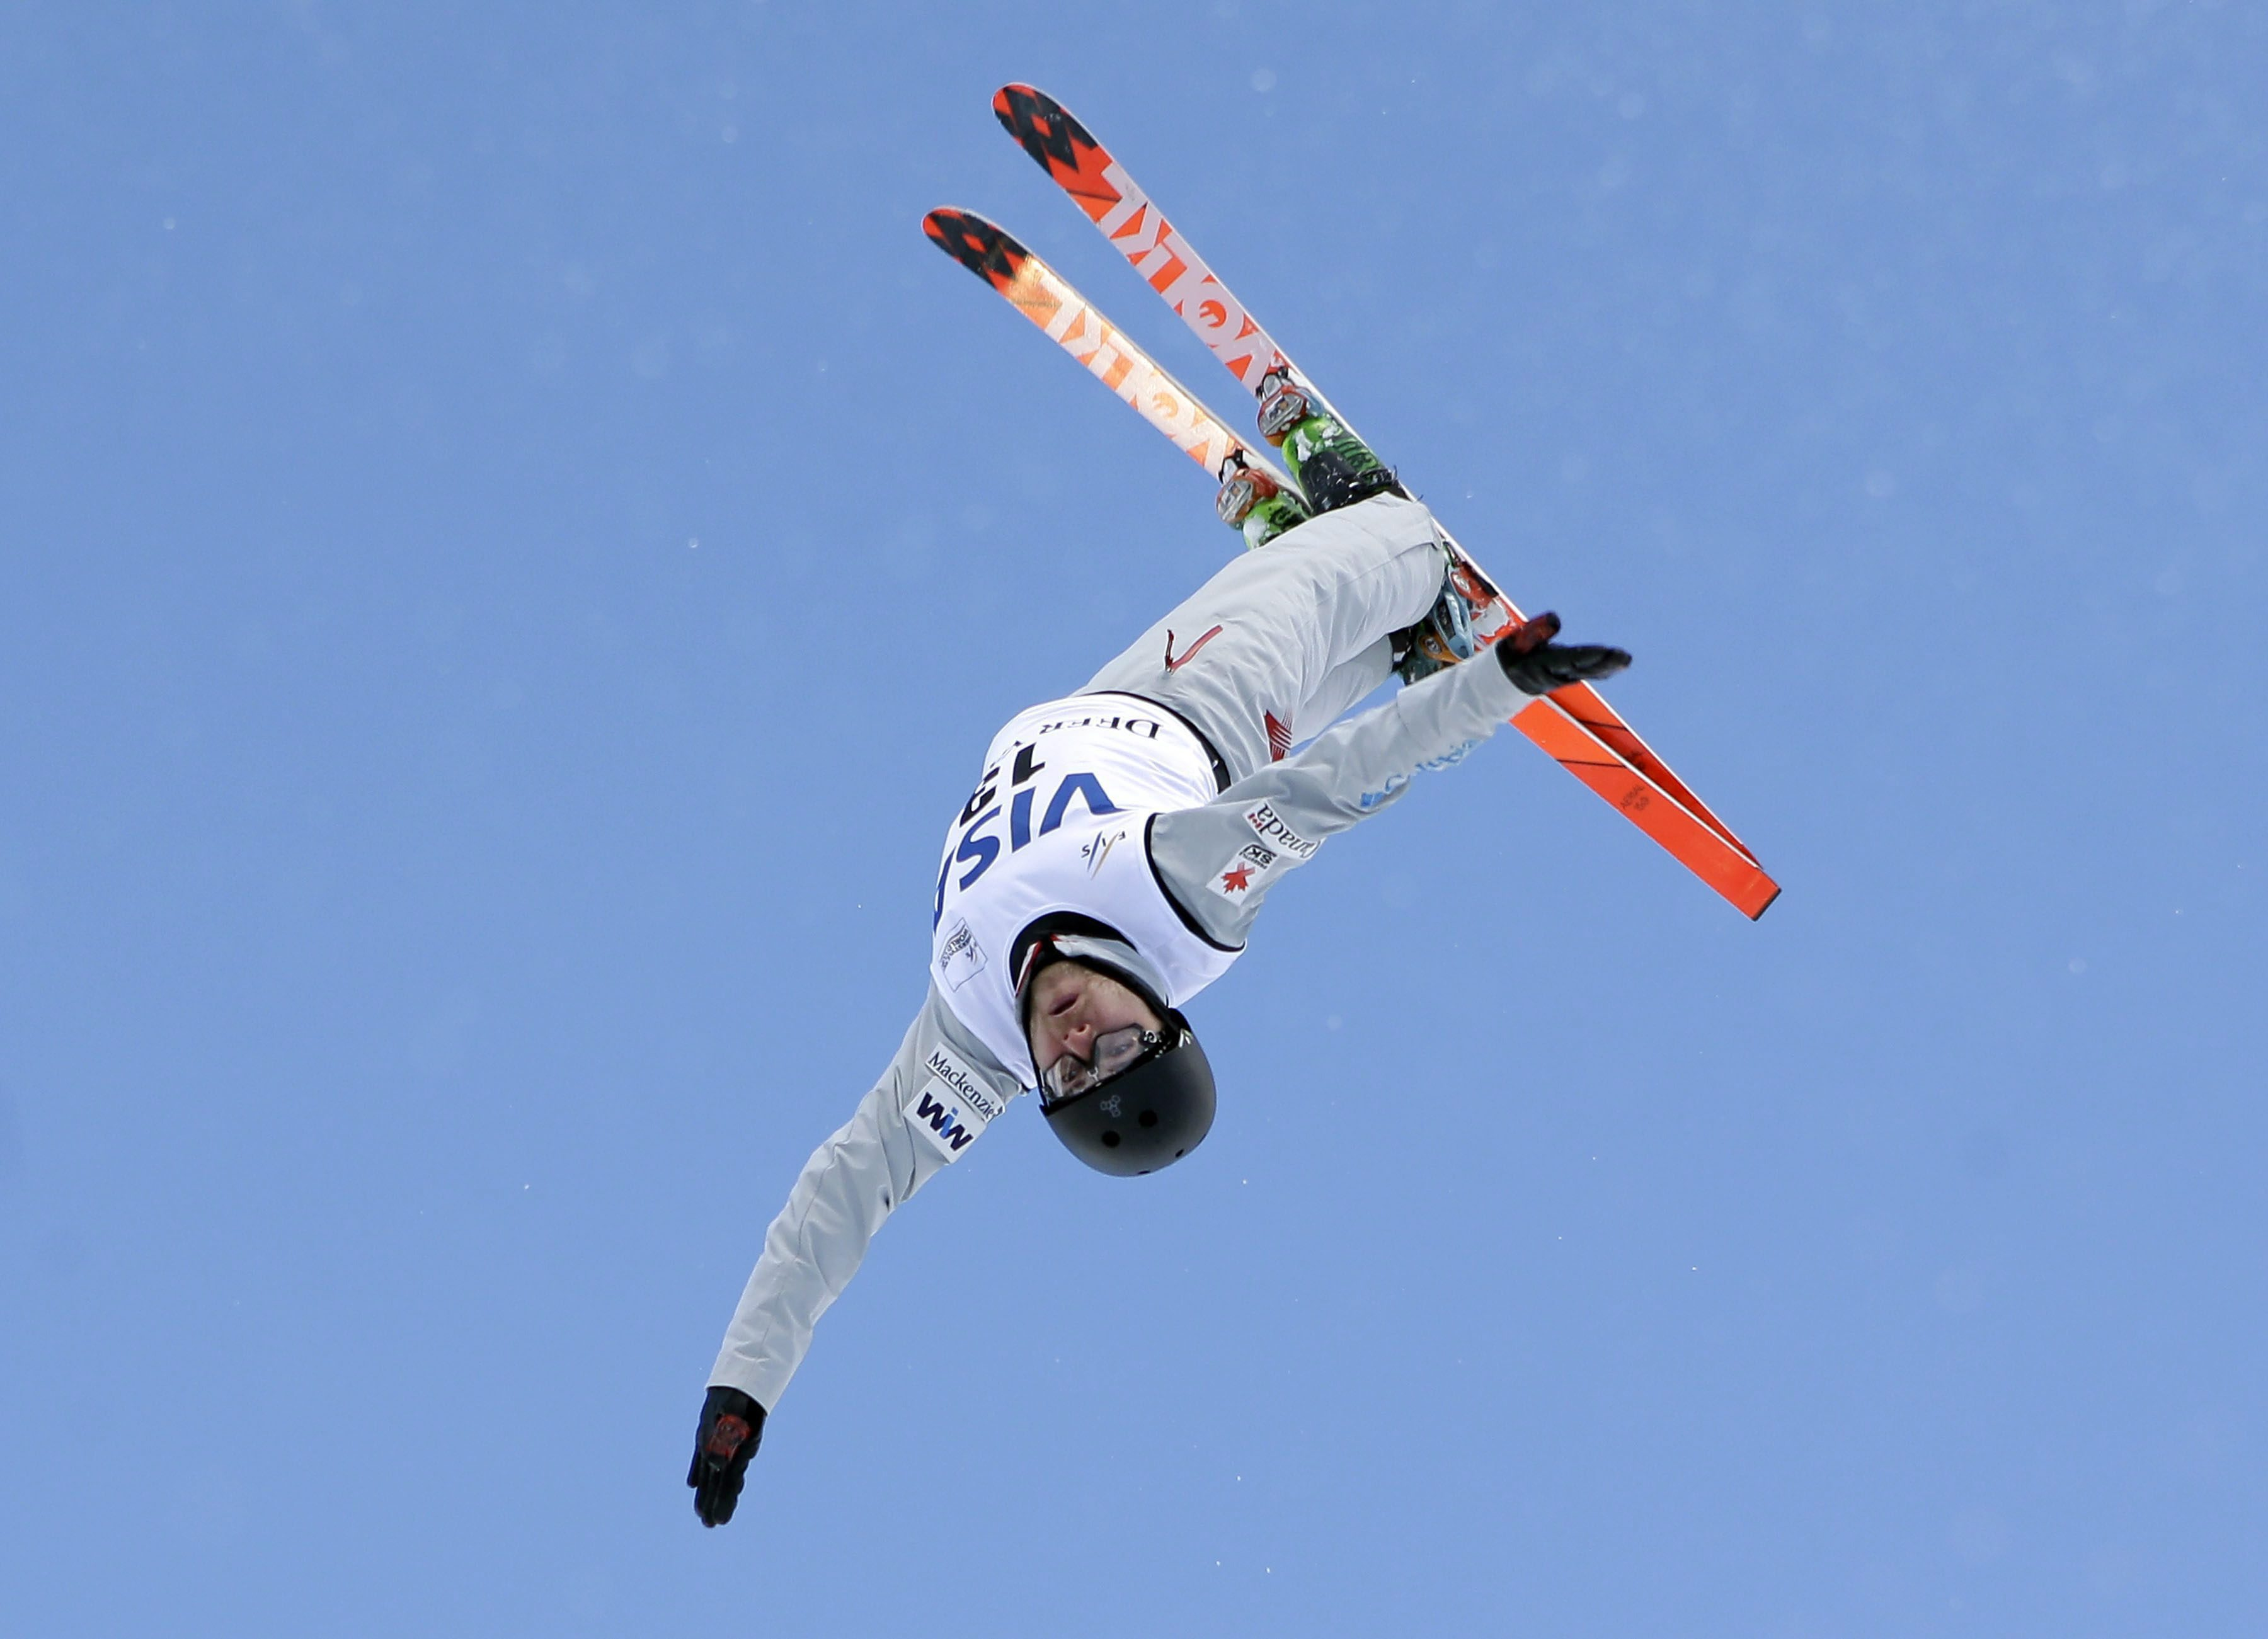 Team Canada - World Cup Freestyle Aerials Skiing